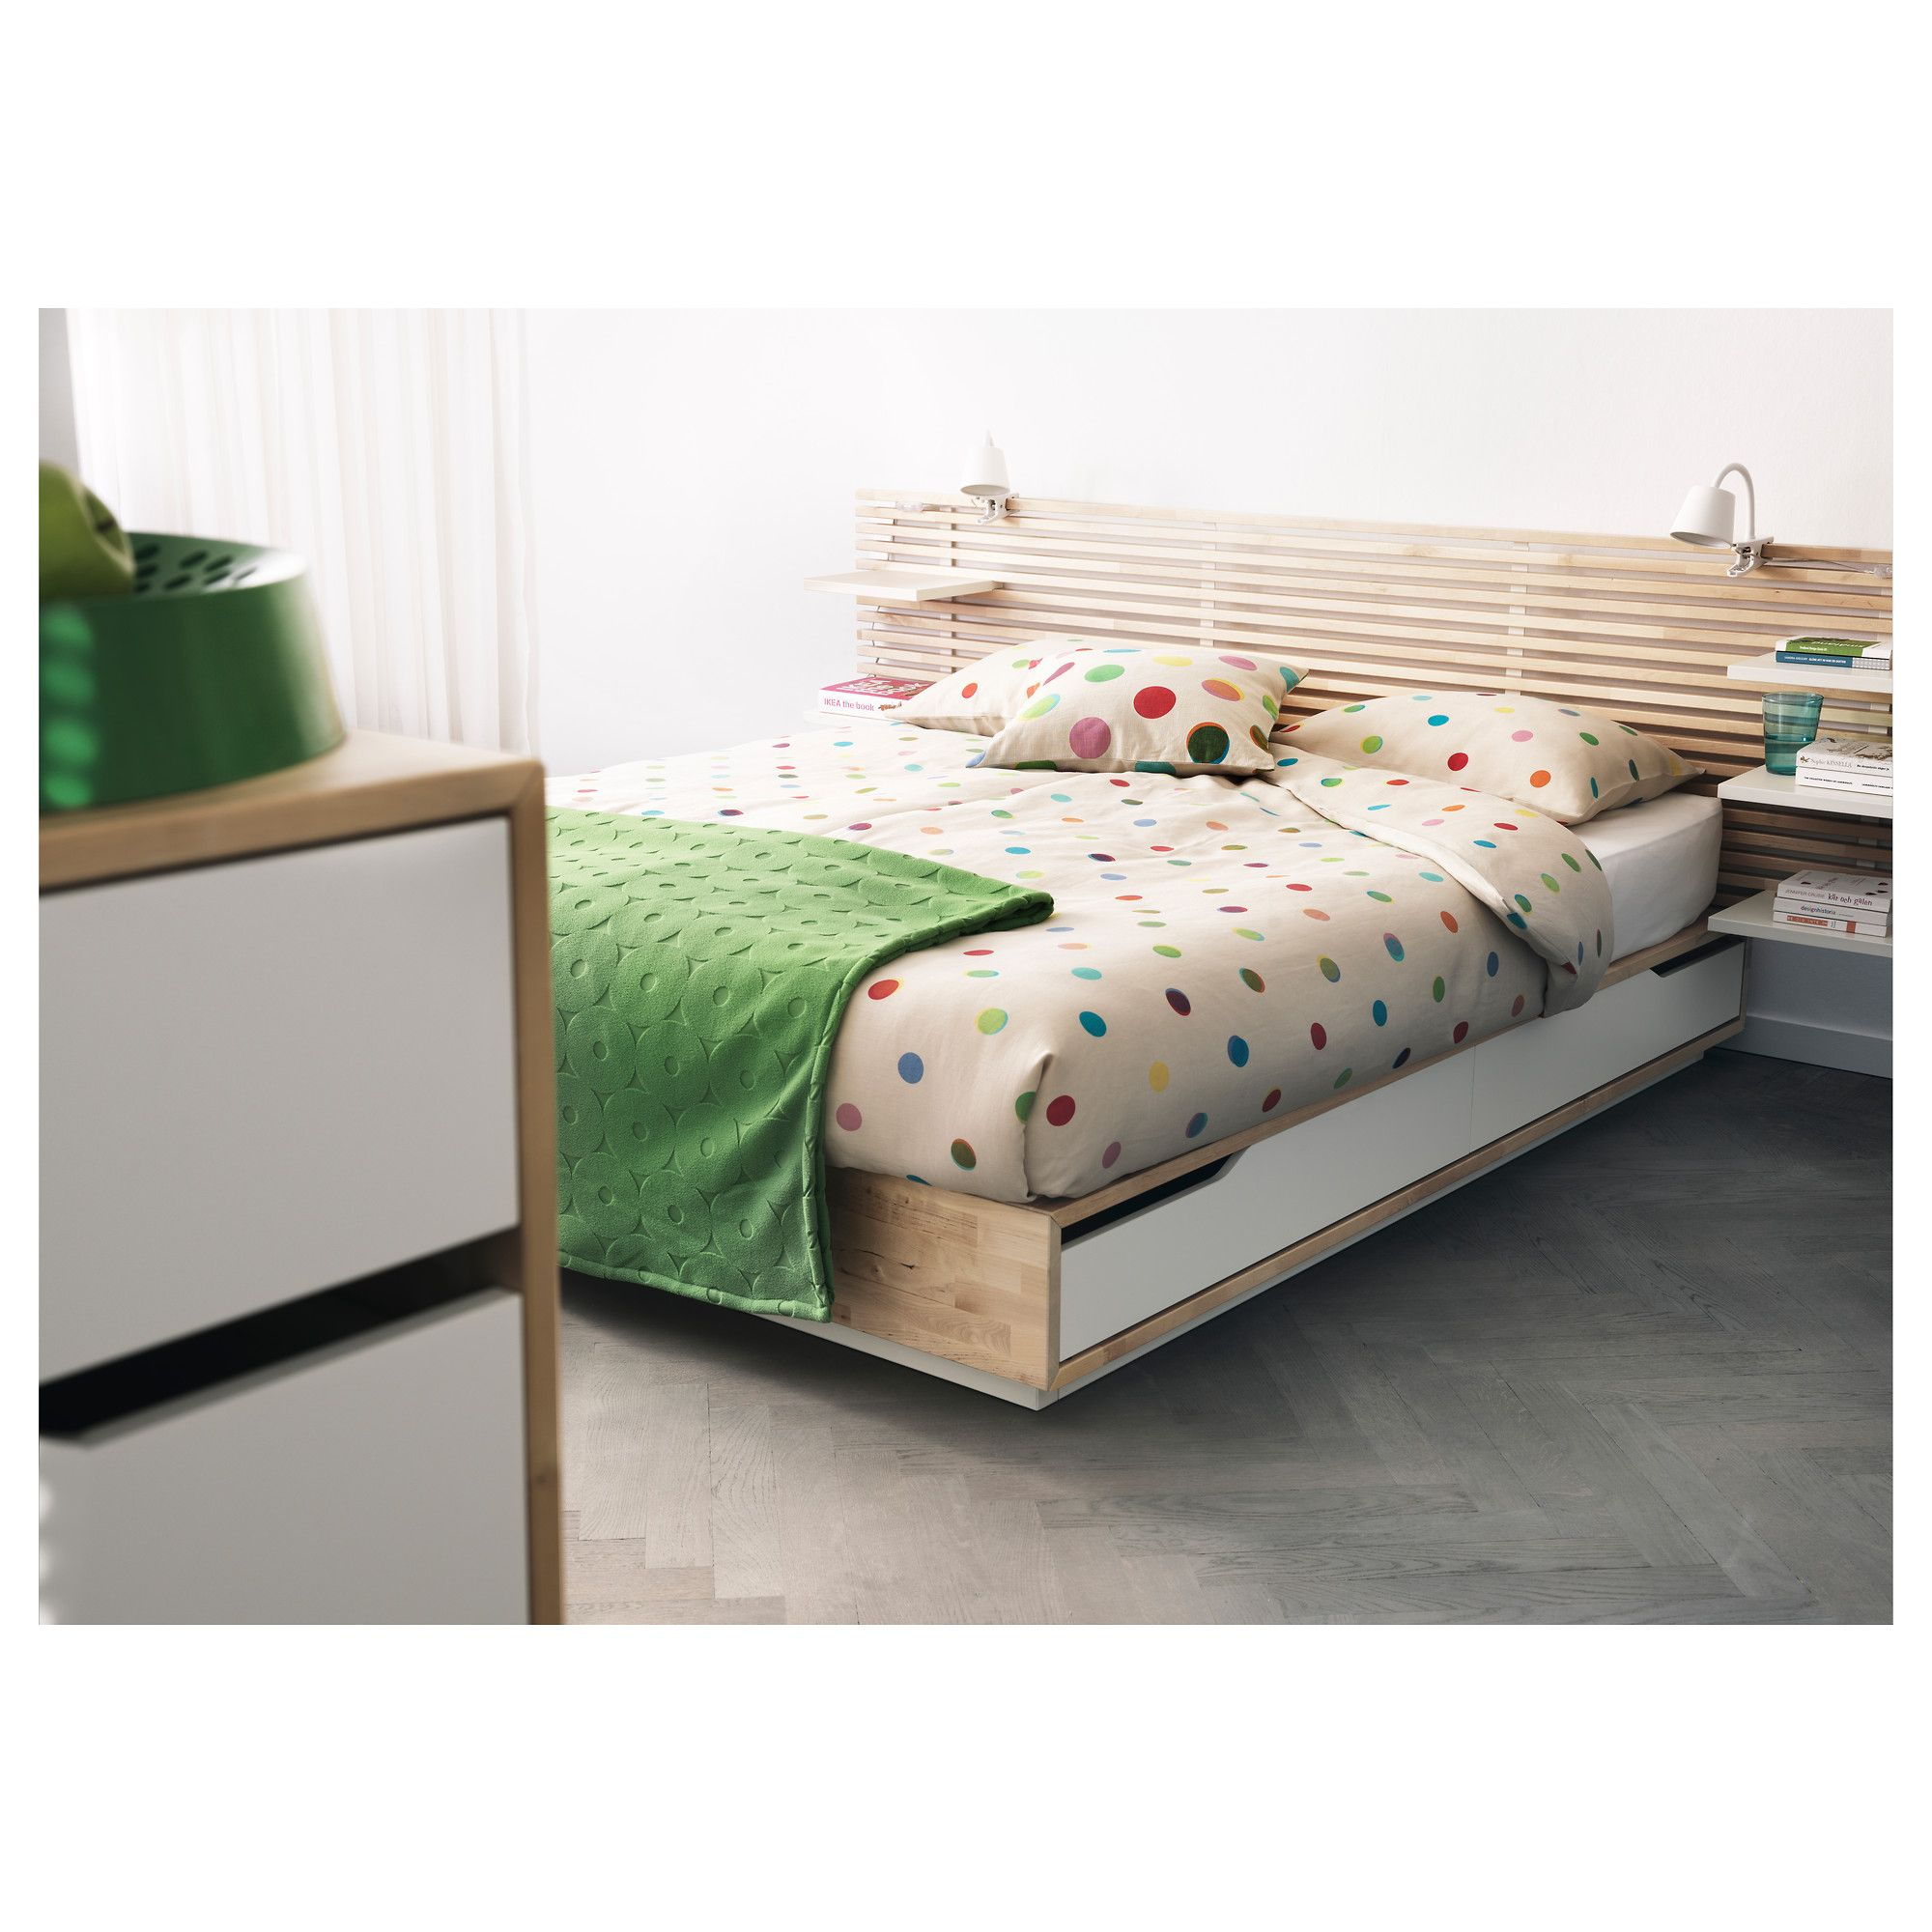 ikea mandal bed - Google Search